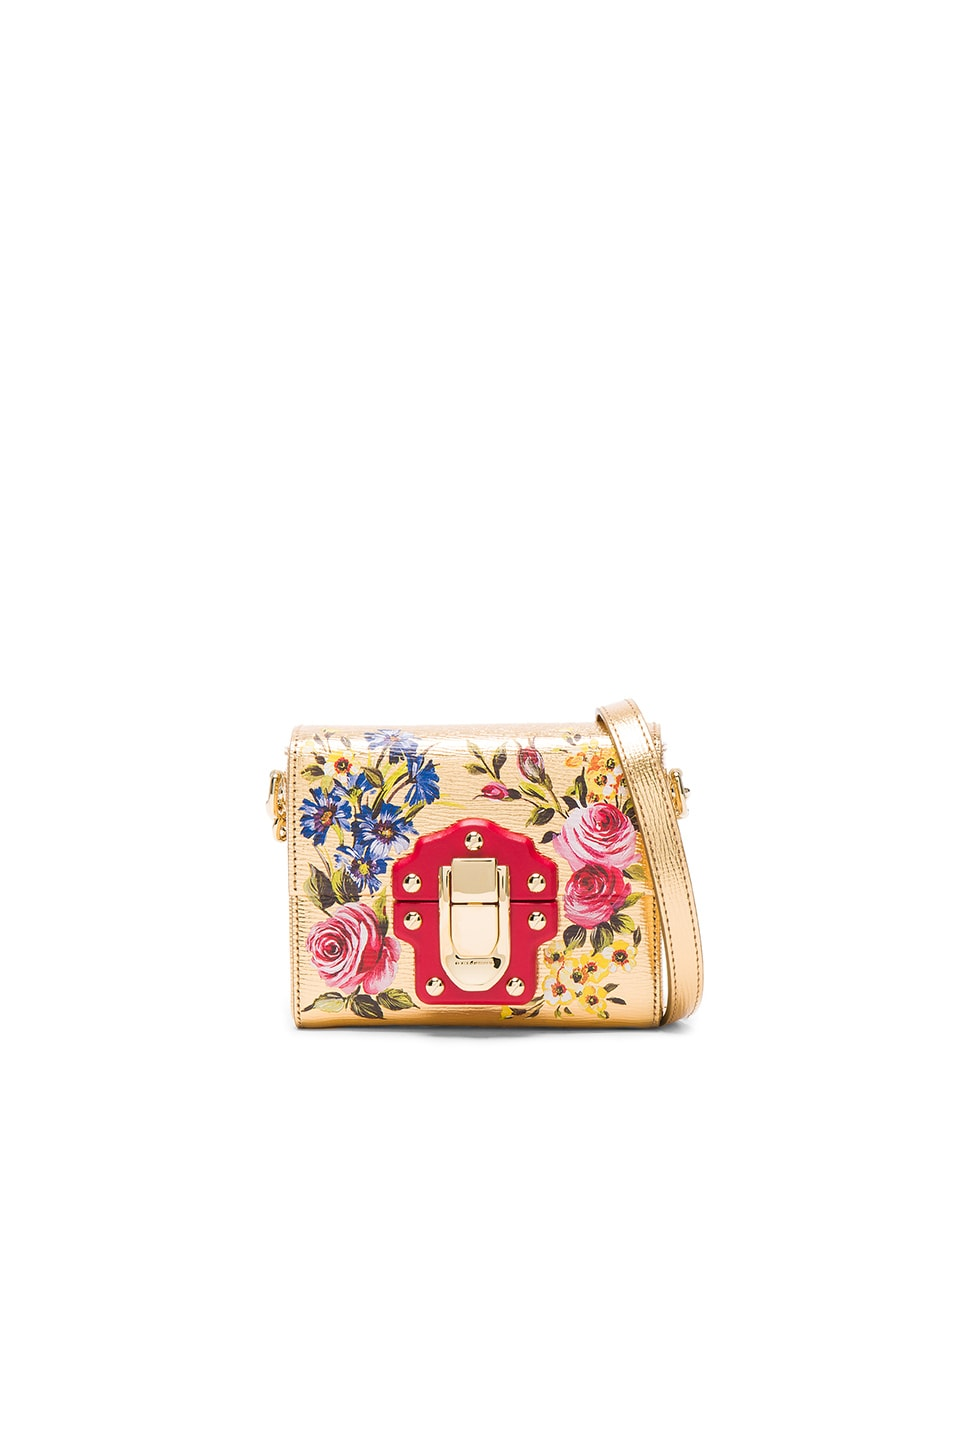 Image 1 of Dolce & Gabbana Soft Square Bag in Gold & Multicolor